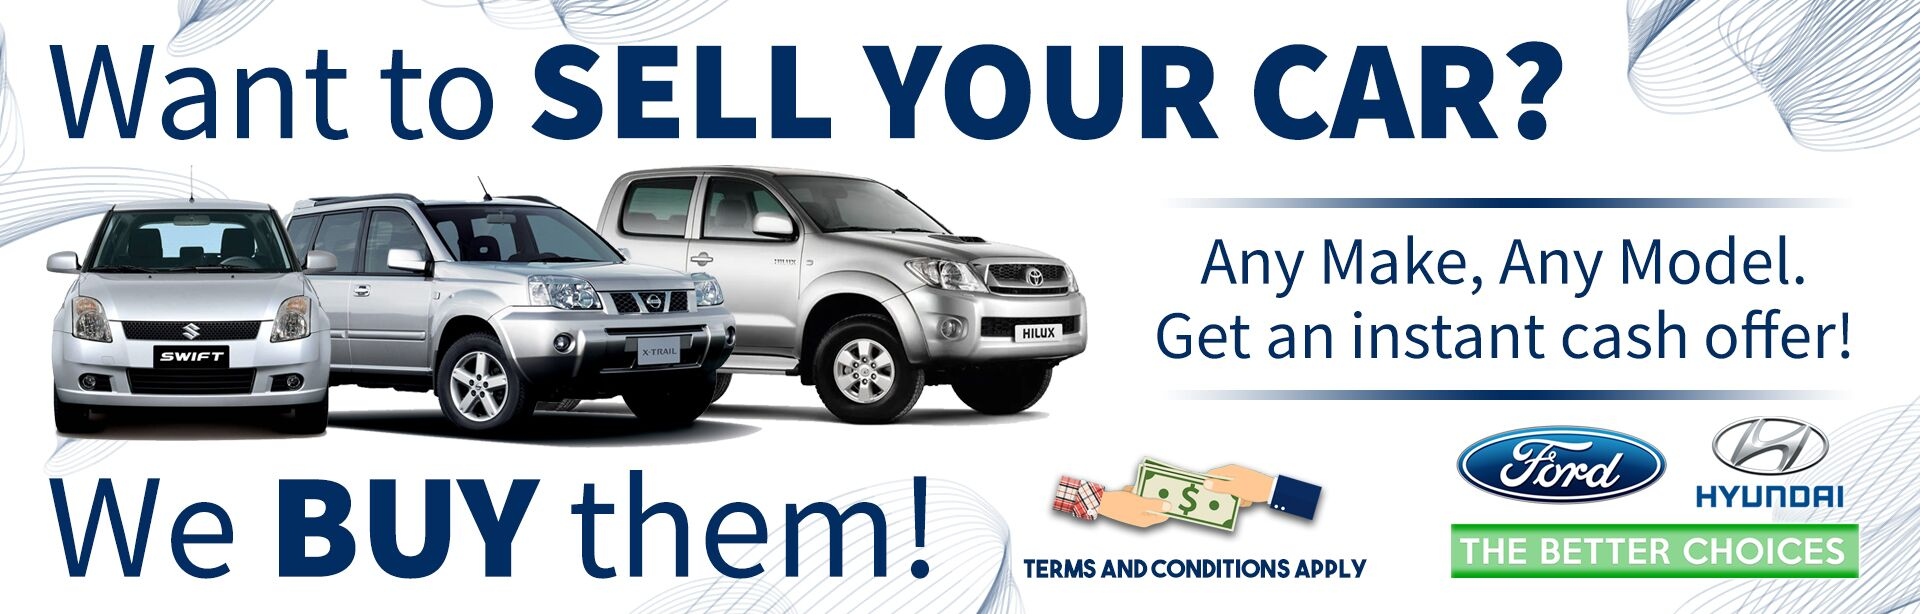 We Buy Cars at Ford Hyundai Samoa